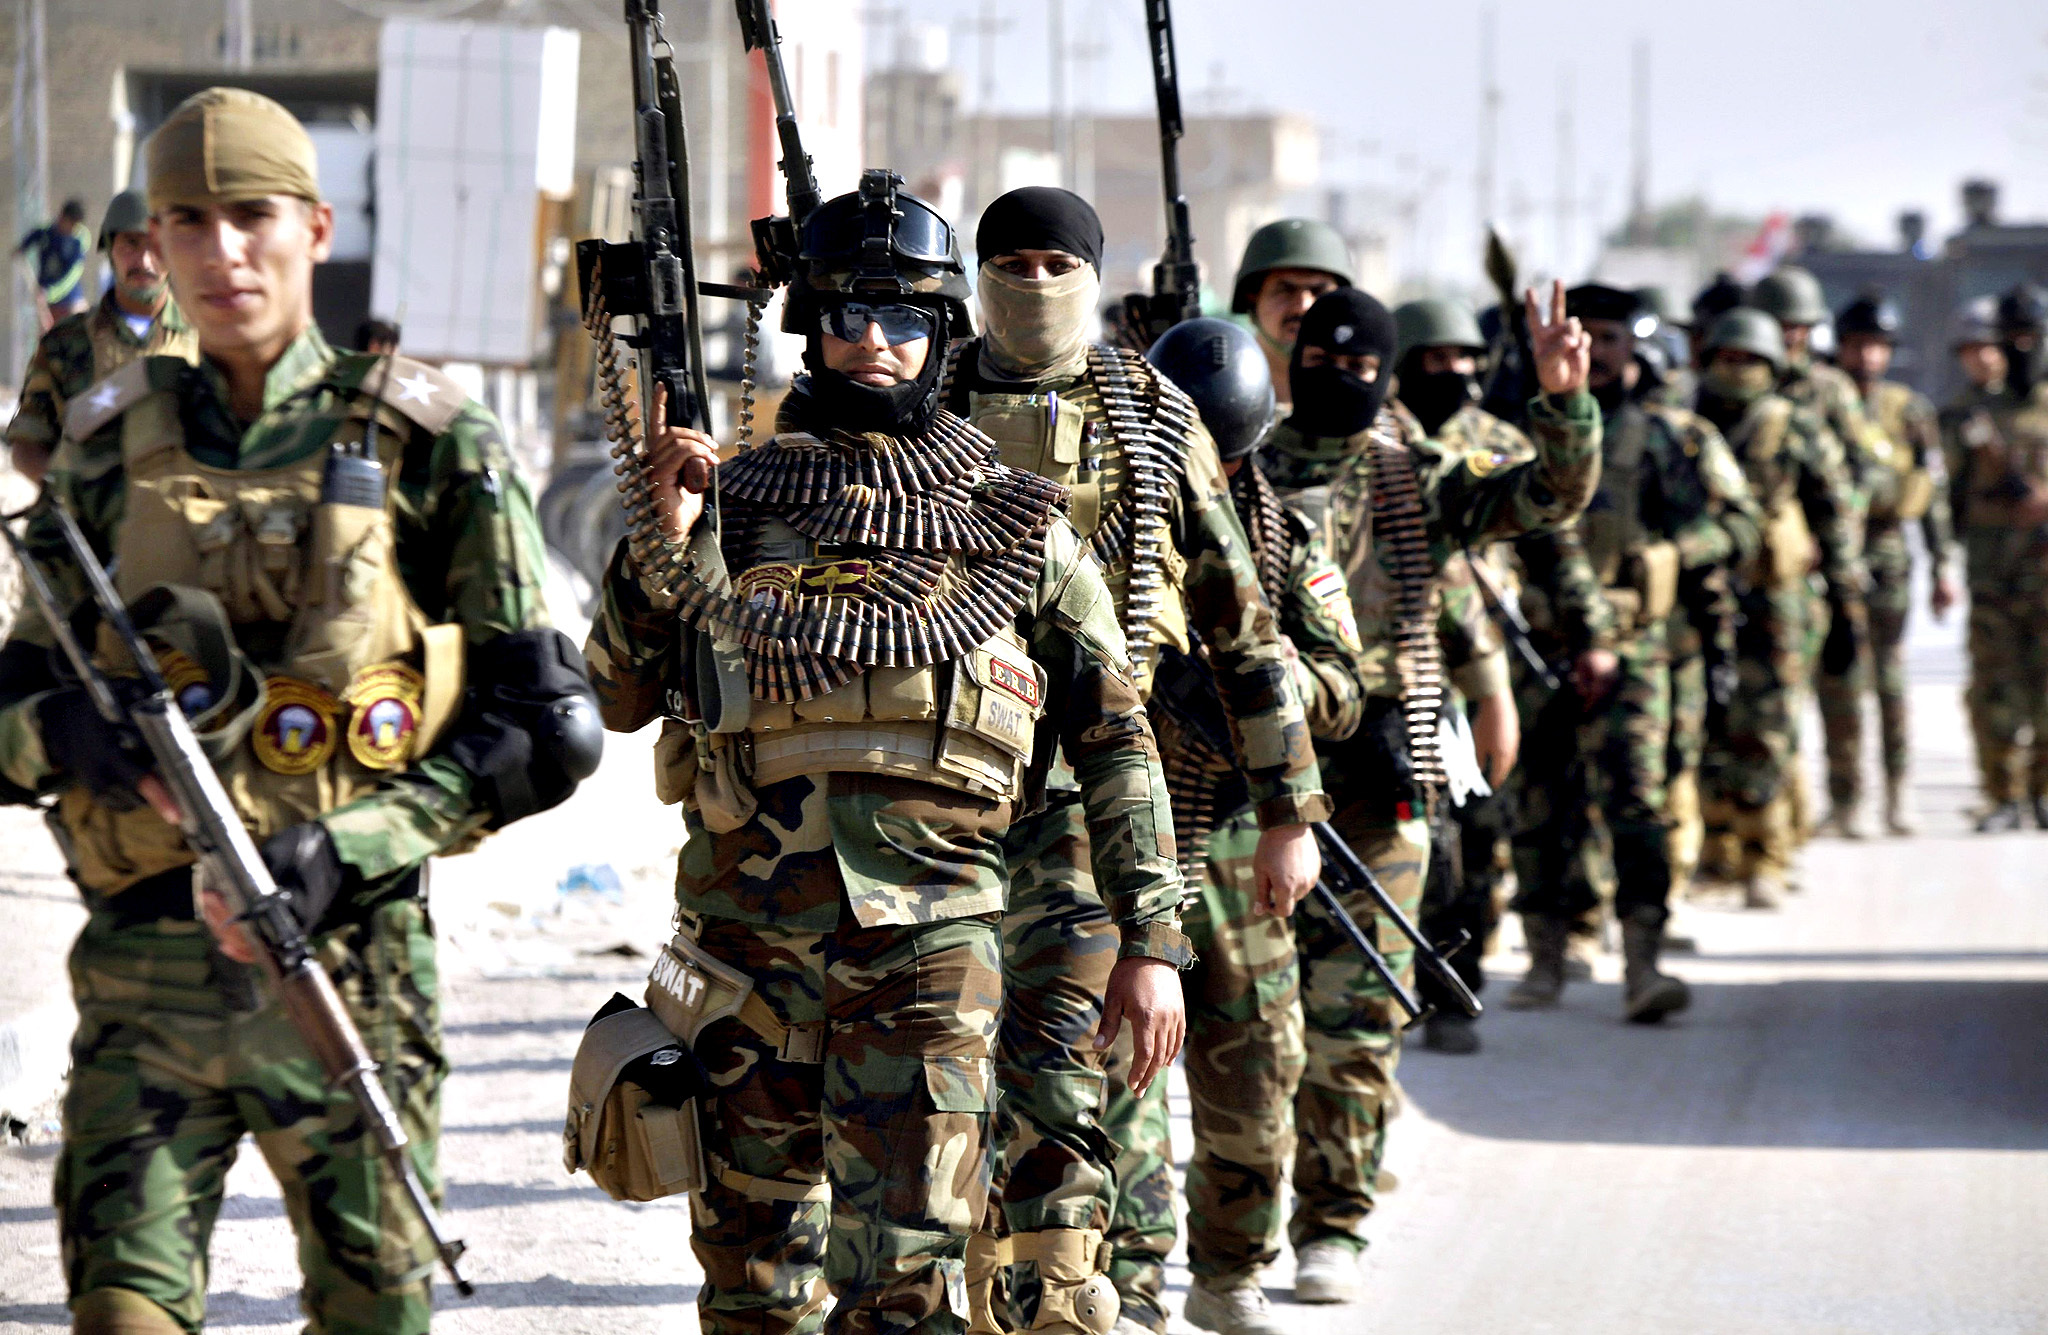 ISIS: 57 Iraqi Soldiers Killed During Past 24 Hours